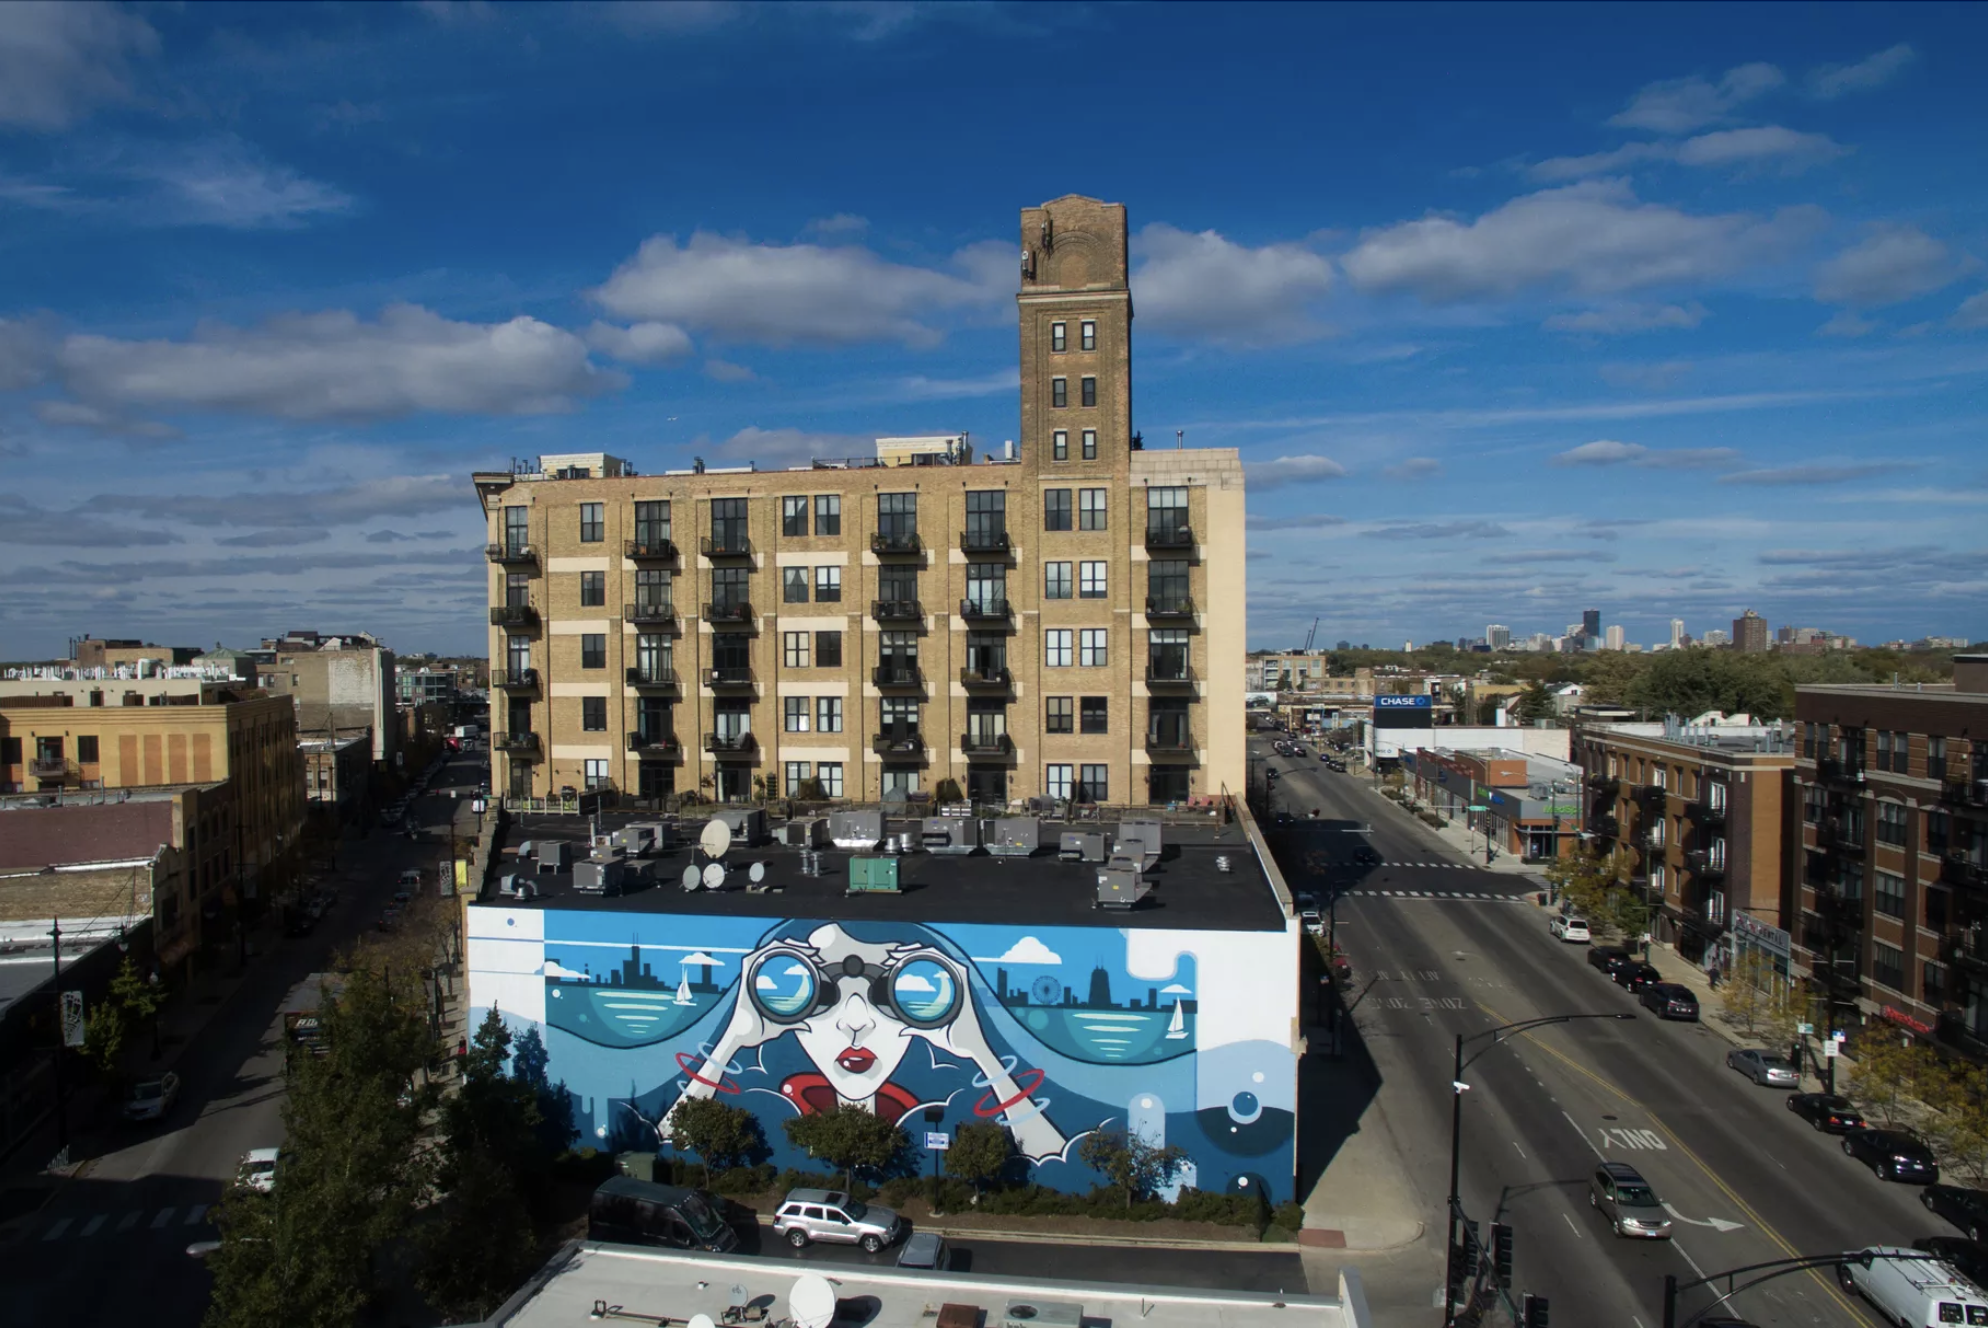 LAKE VIEW by Anthony Lewellen at the intersection of Lincoln/Ashland/Belmont. Way Up Creative. Photo courtesy of Curbed Chicago